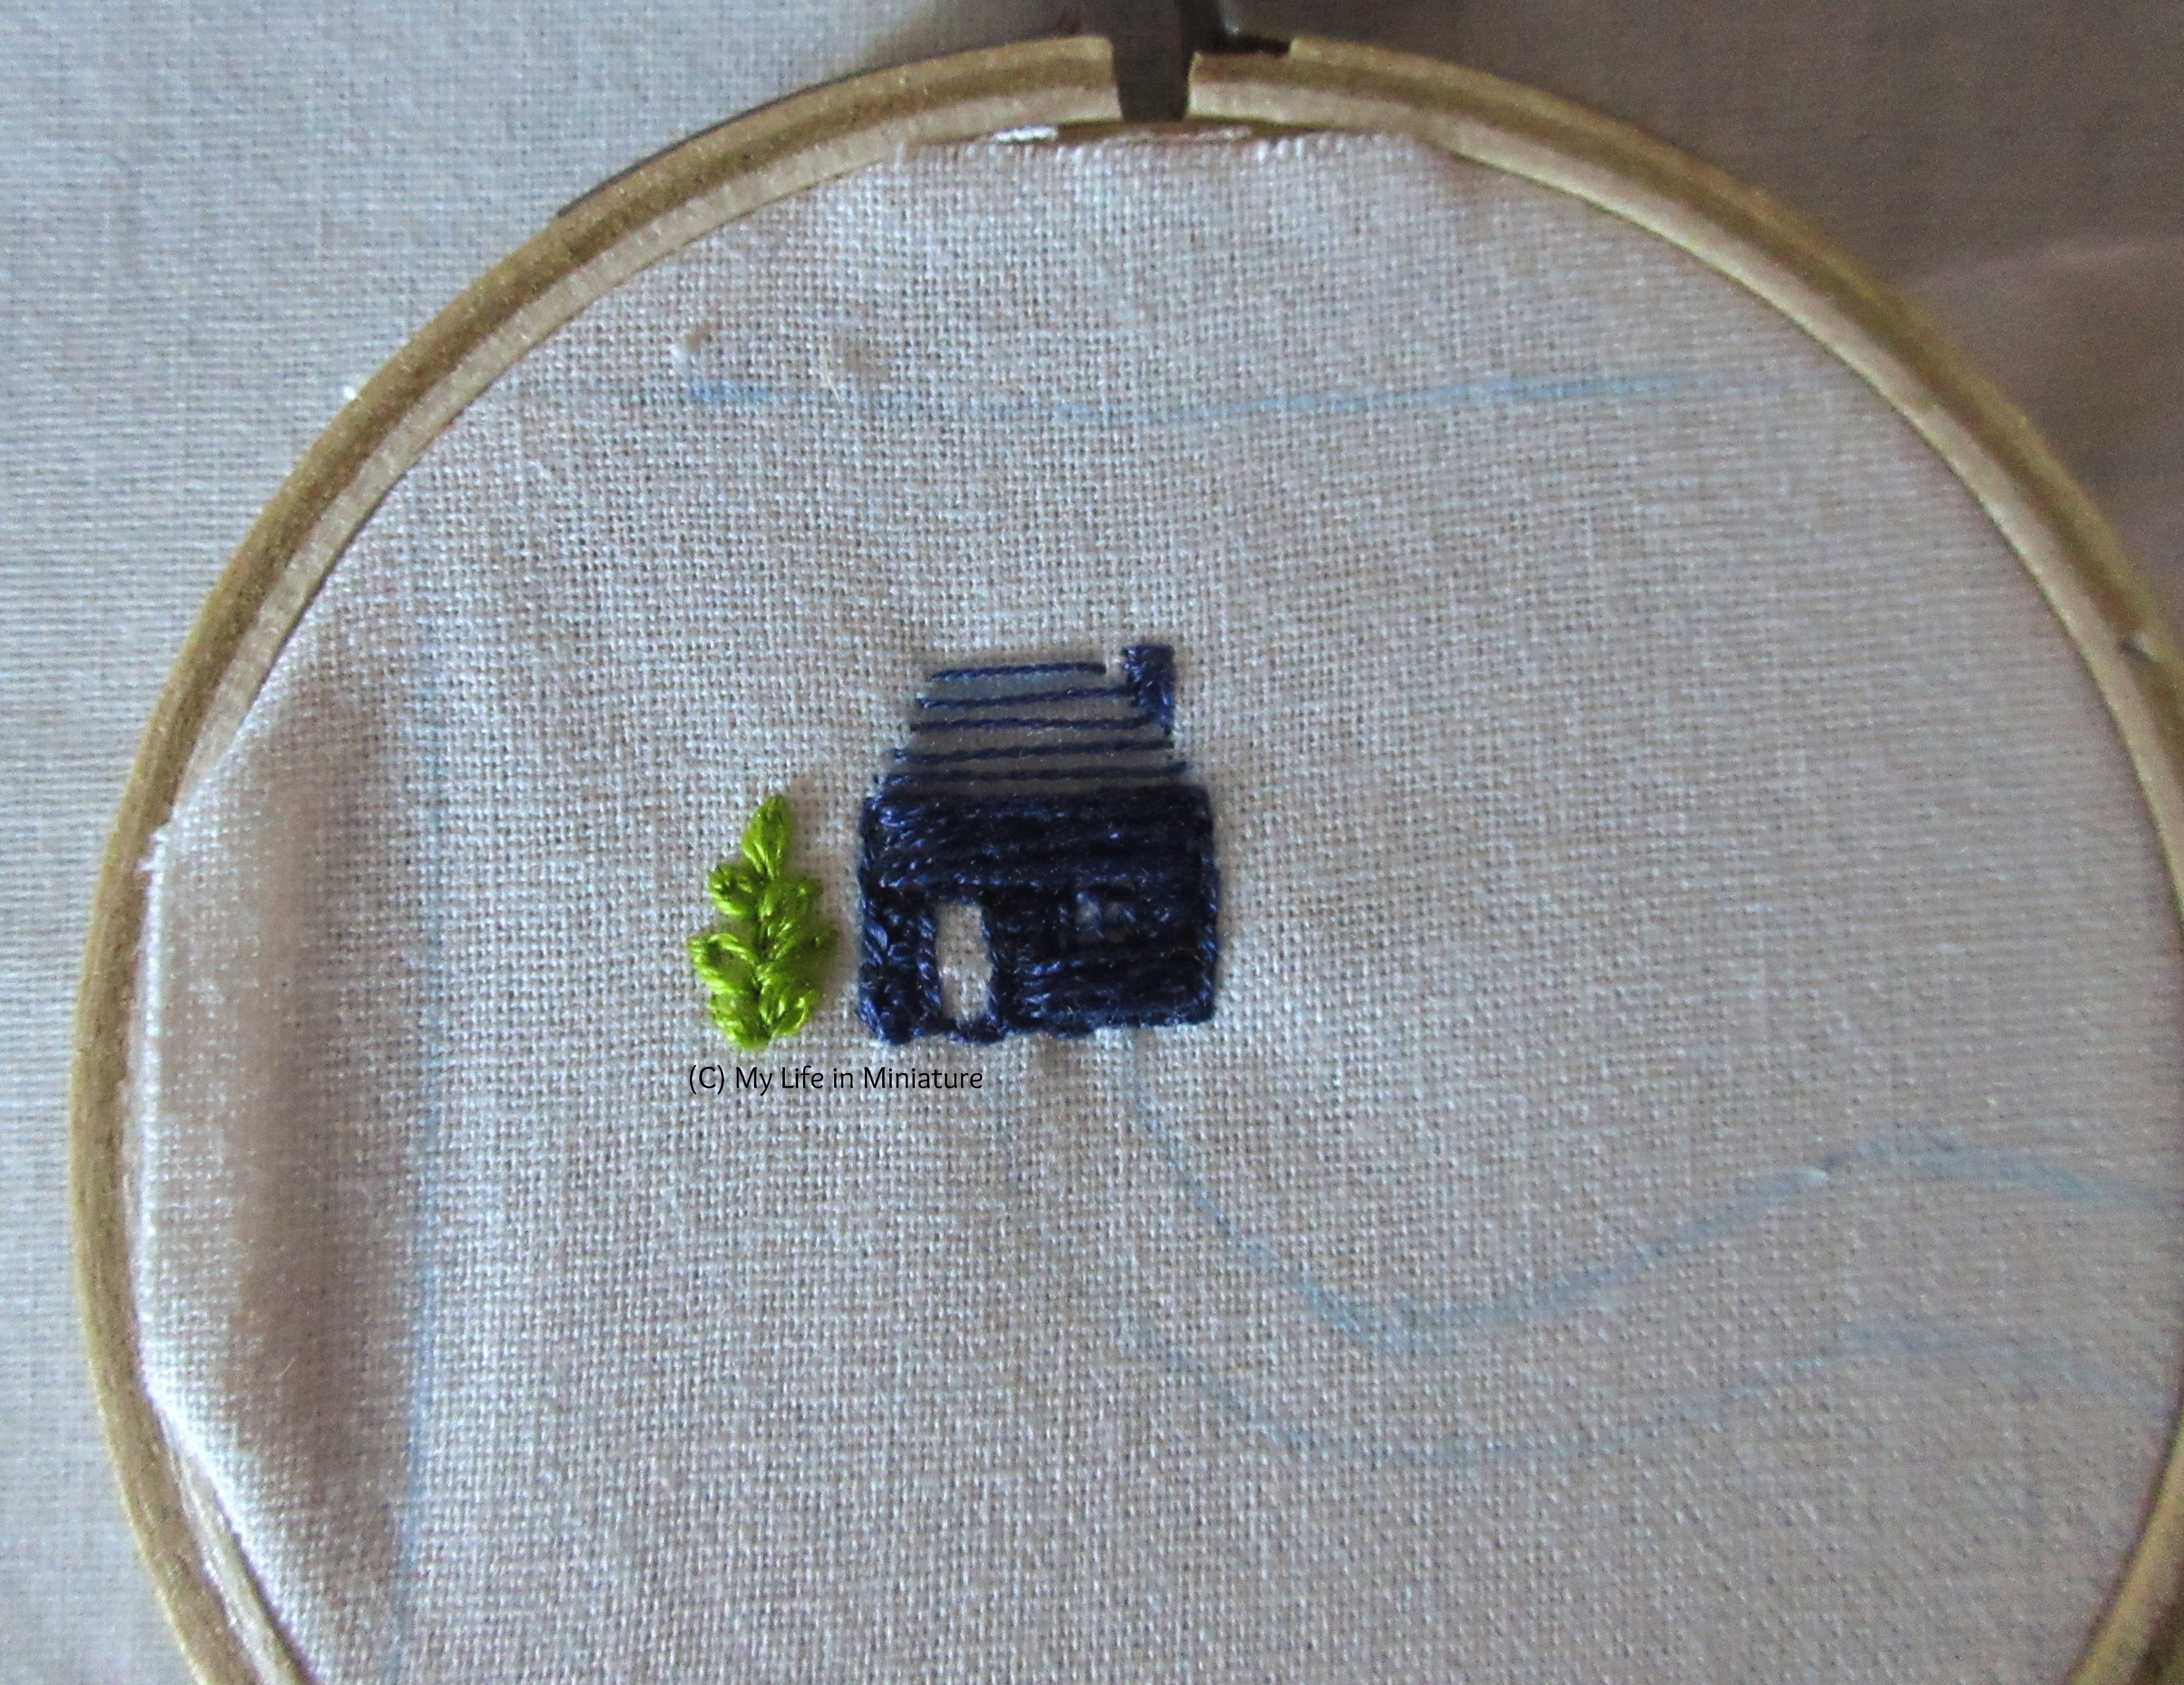 White fabric is in a wooden embroidery hoop. A small navy blue house and a green plant are embroidered on it, next to each other.